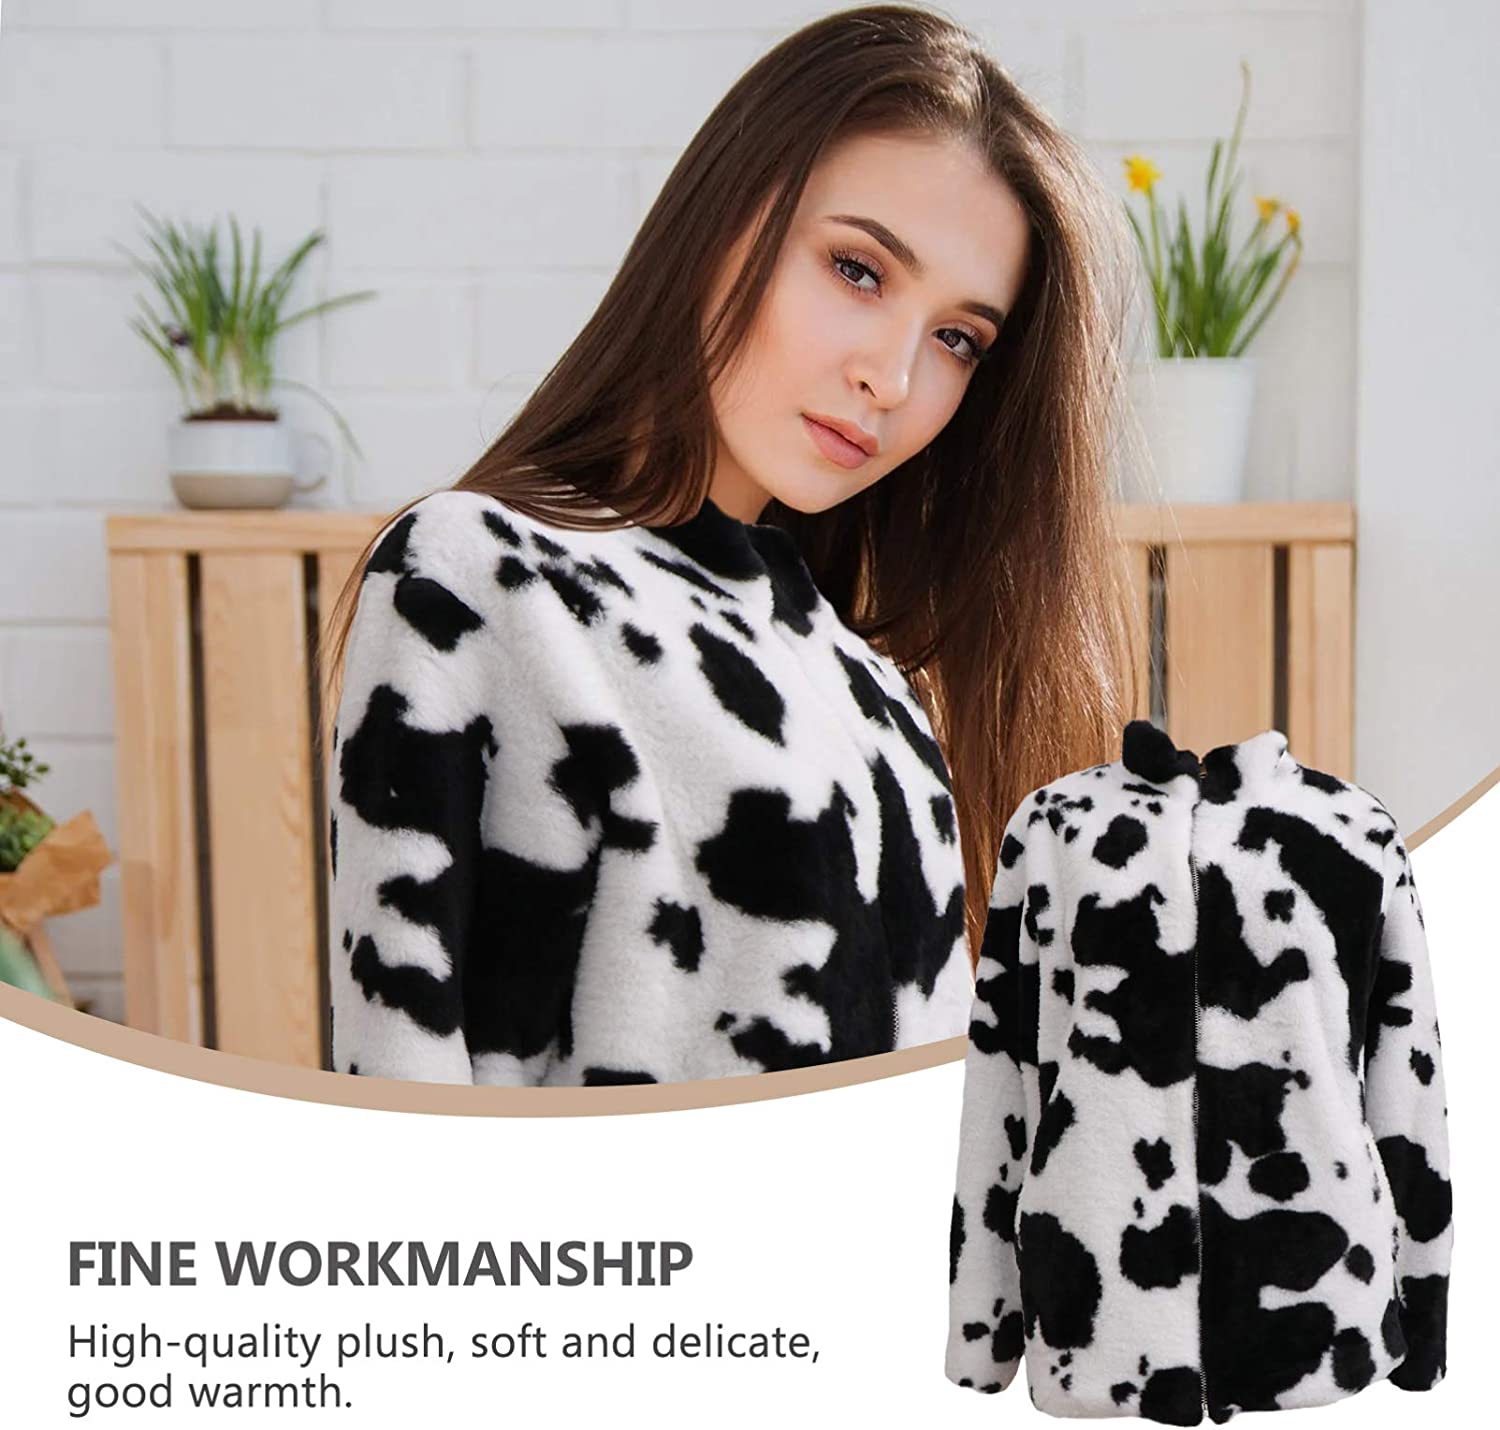 VALICLUD Womens Faux Fur Coat Zip Up Cow Print Jacket Fluffy Shearling Coat Long Sleeve Black, White